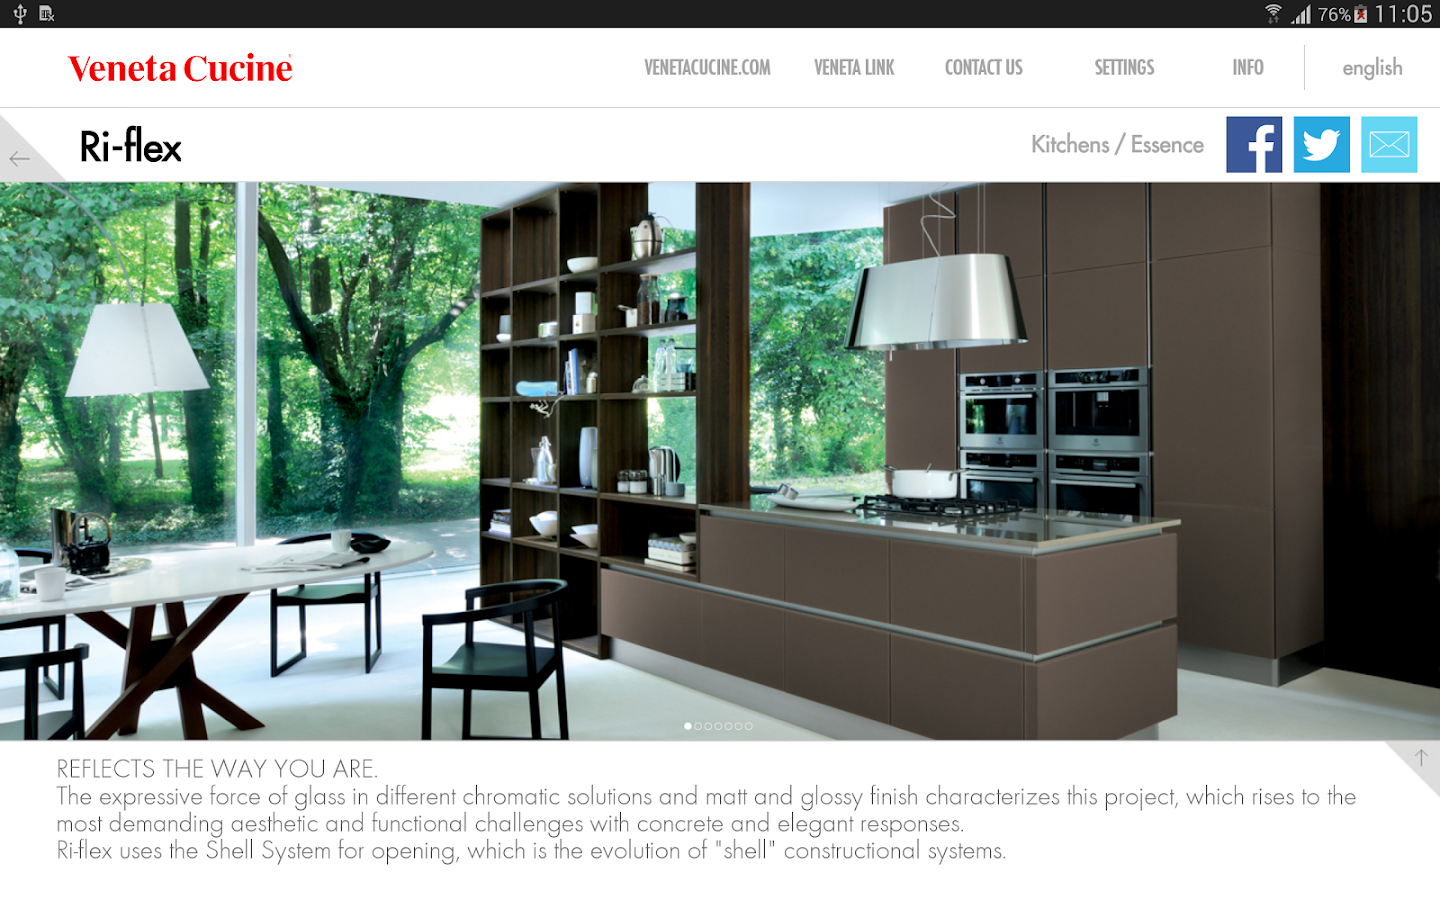 Veneta Cucine Official App Android Apps On   Play #336D48 1440 900 Veneta A Cucine